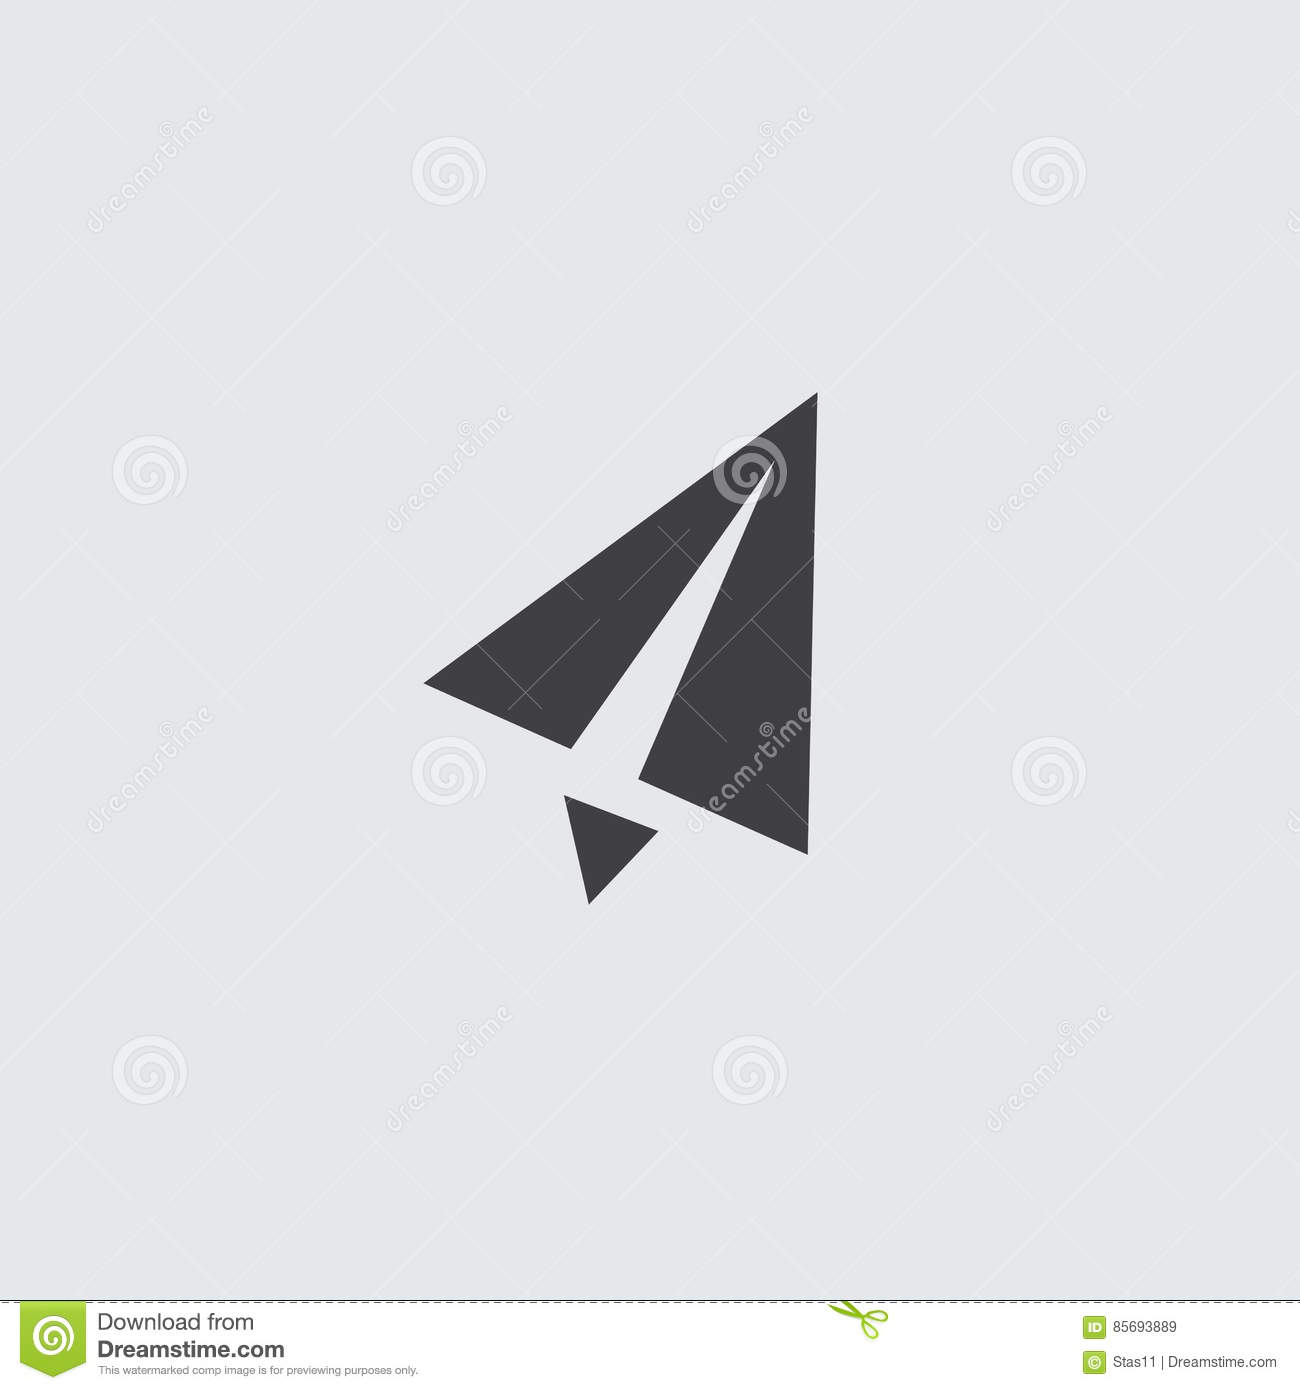 Paper plane icon in a flat design in black color. Vector illustration eps10